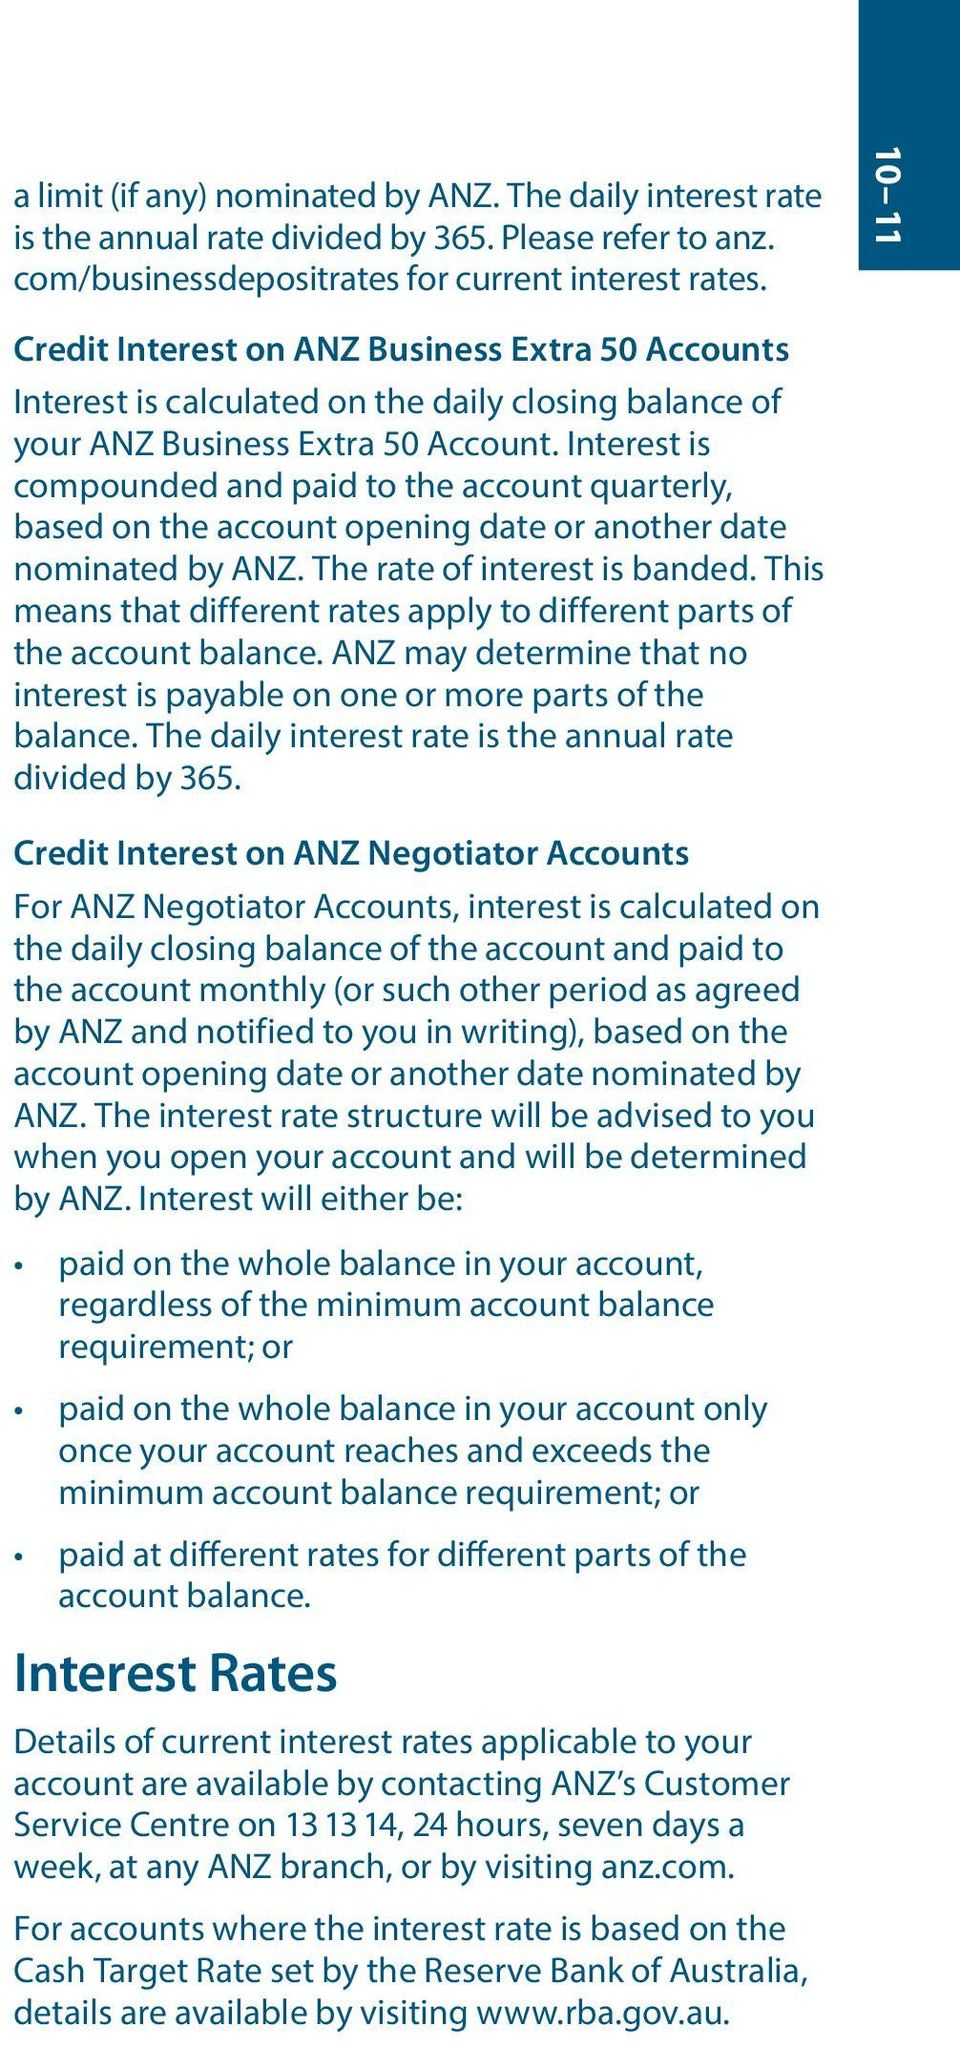 Interest is compounded and paid to the account quarterly, based on the account opening date or another date nominated by ANZ. The rate of interest is banded.